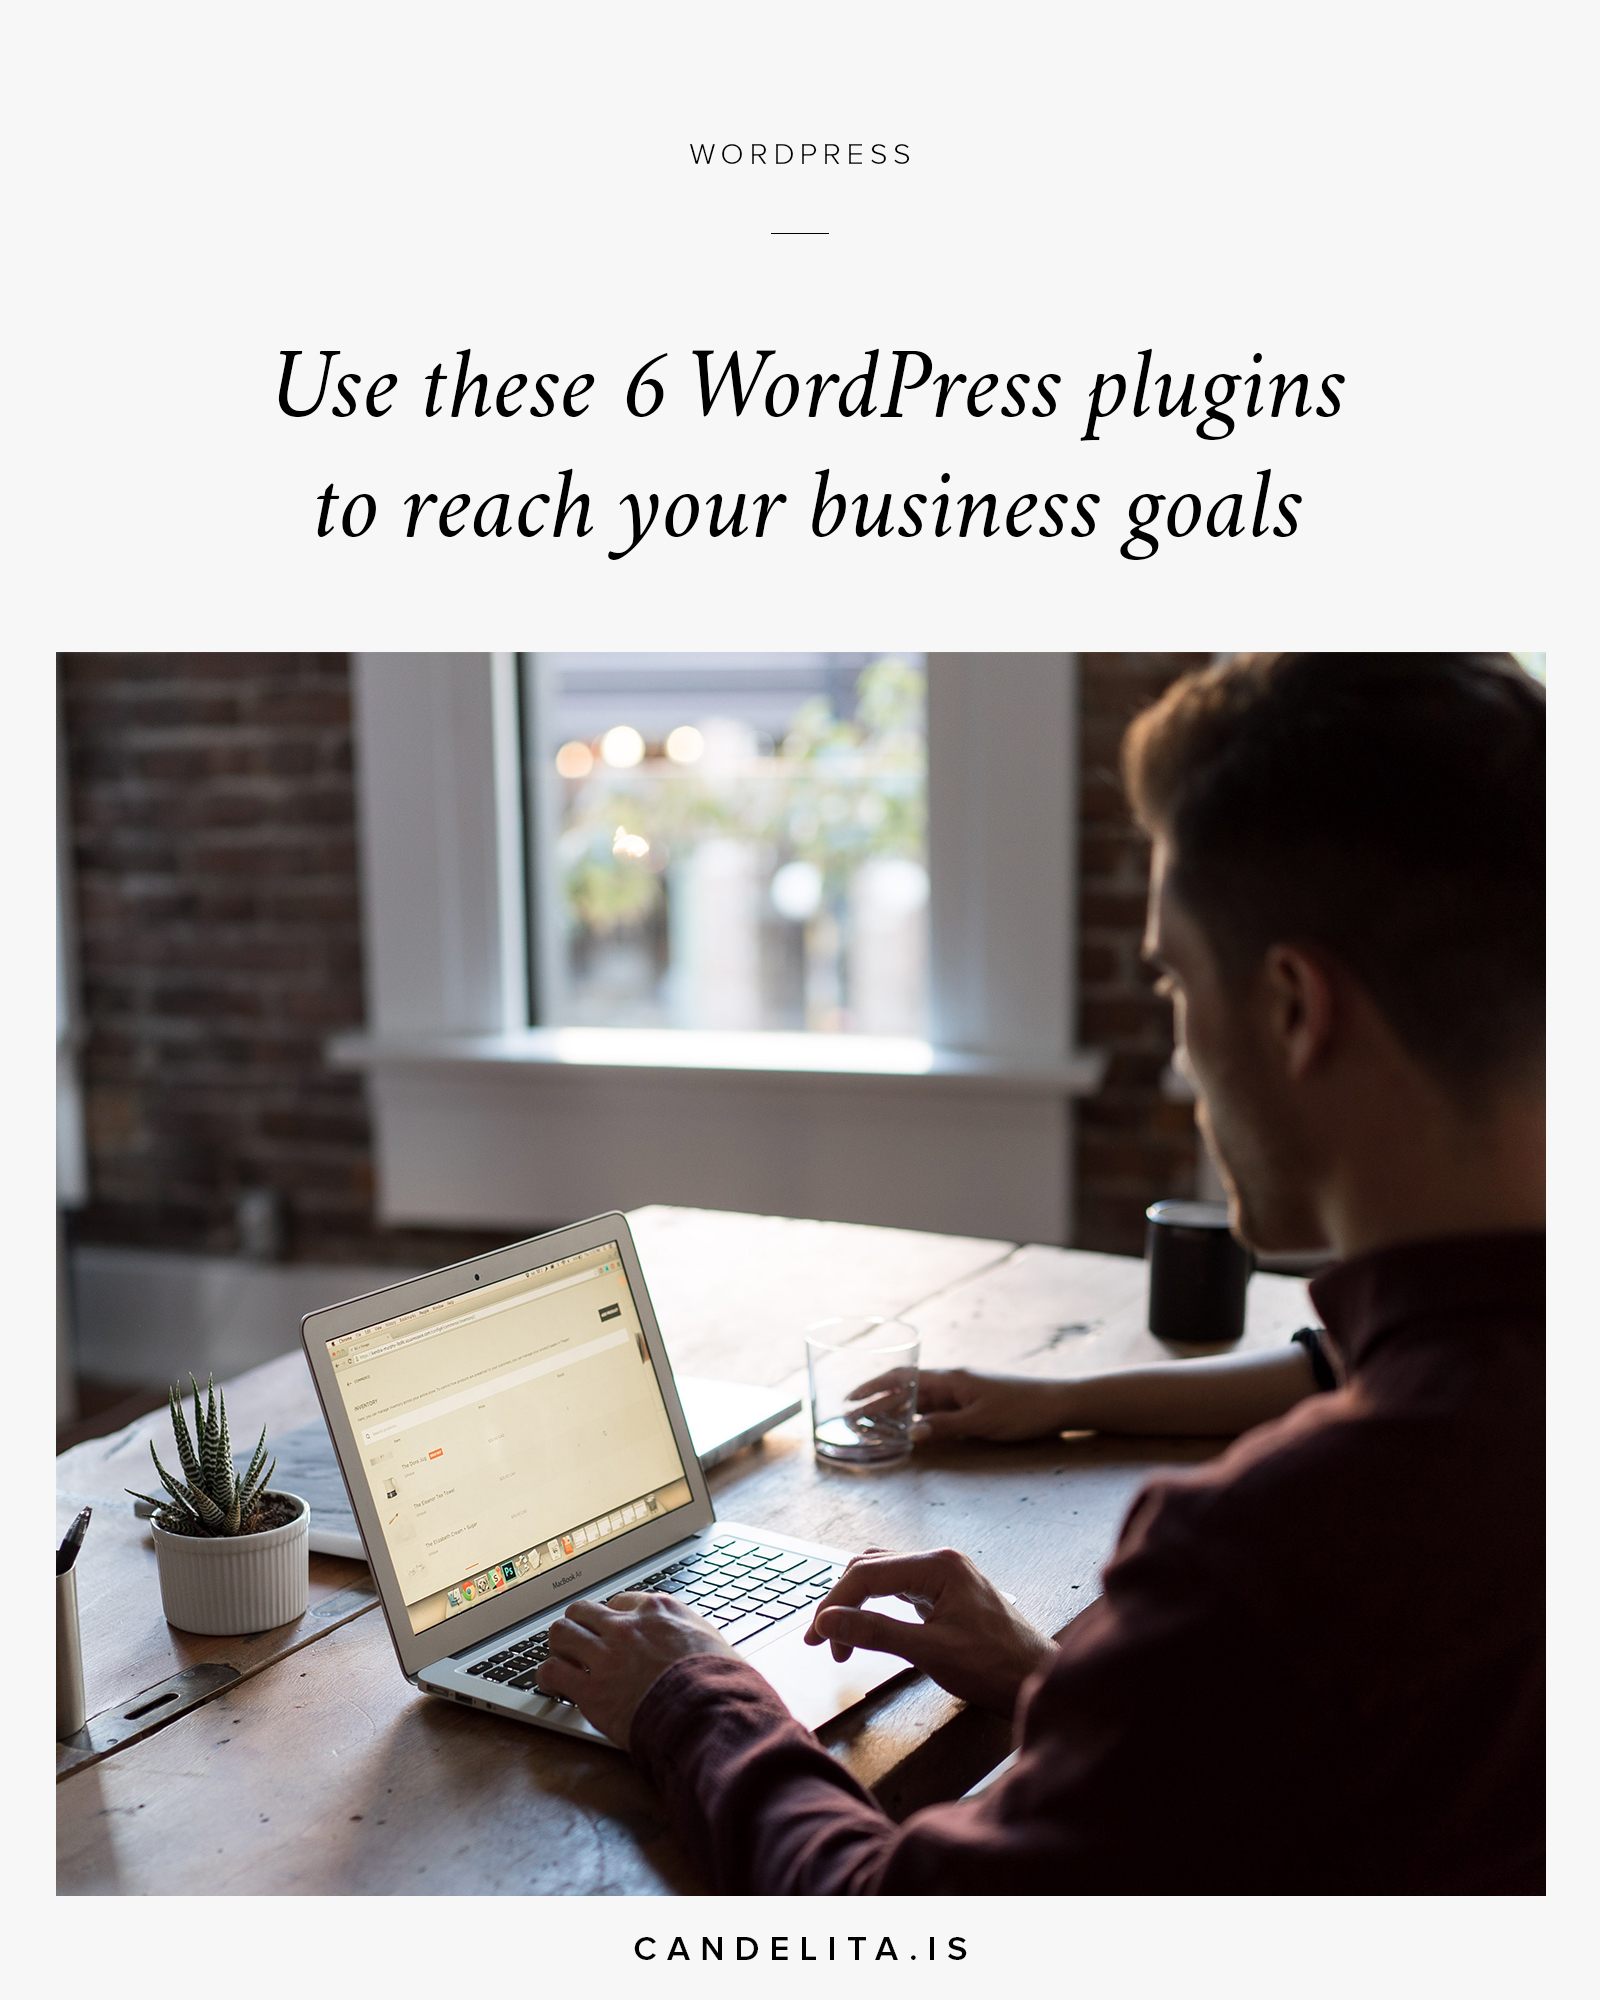 Use these 6 WordPress plugins to reach your business goals